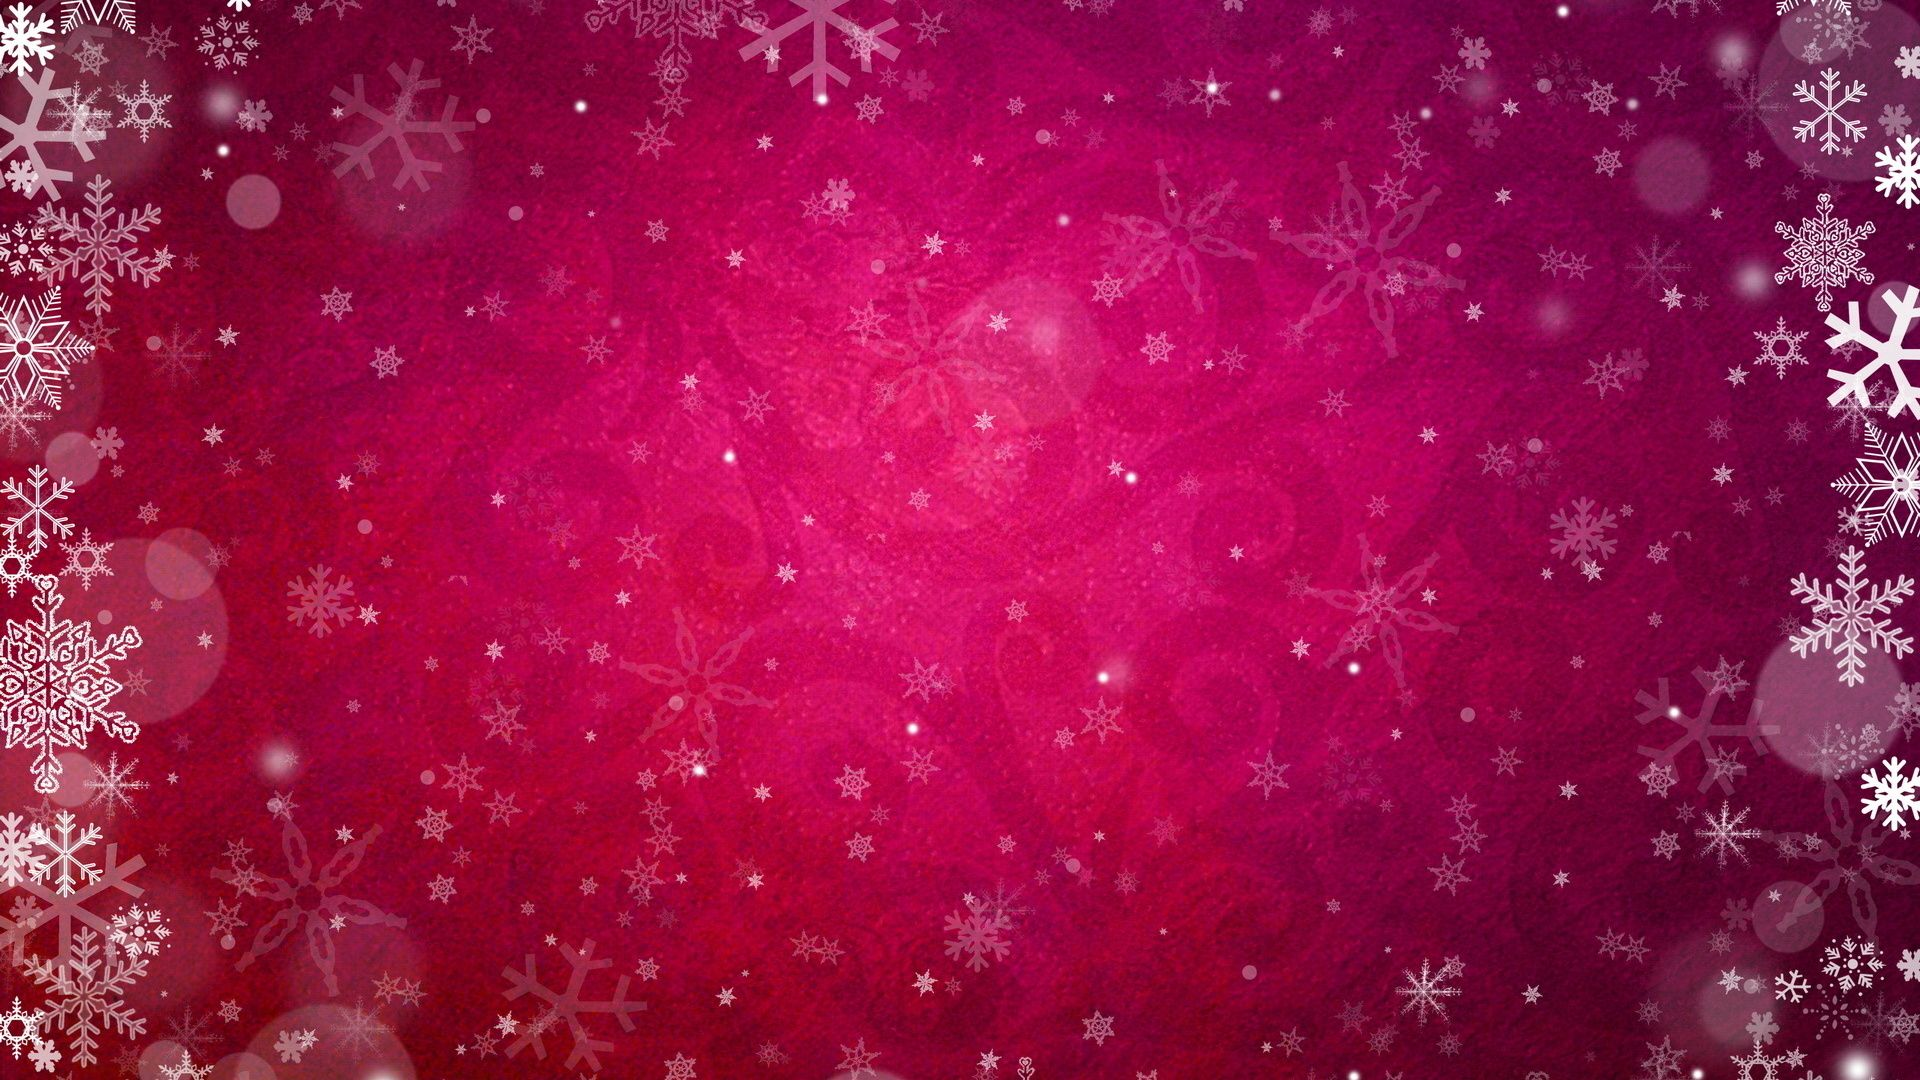 Snowflake Background 18283 Pink Wallpaper Backgrounds Snowflake